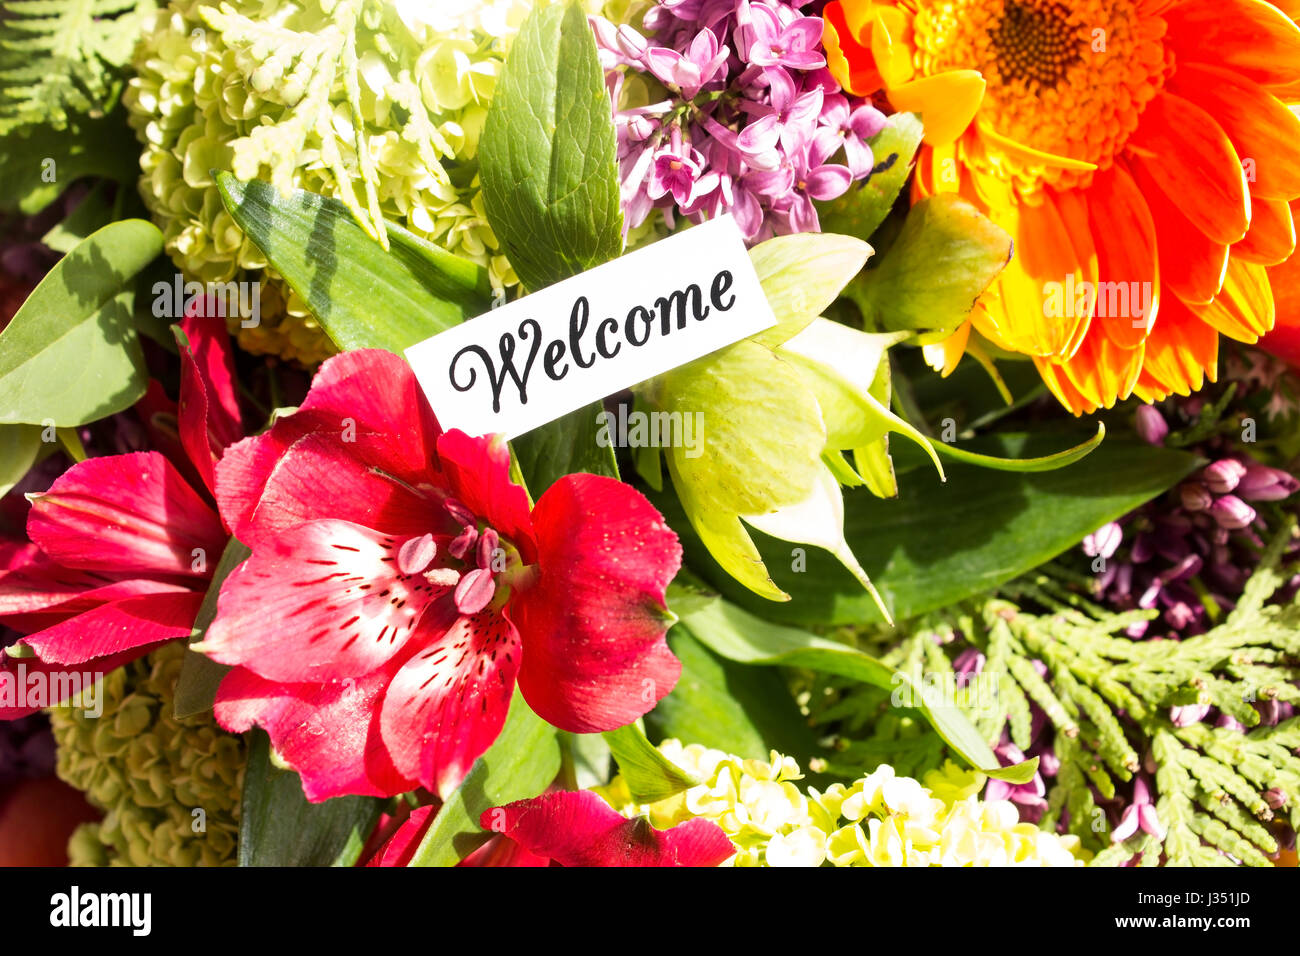 Welcome card with bouquet of flowers stock photo 139637973 alamy welcome card with bouquet of flowers izmirmasajfo